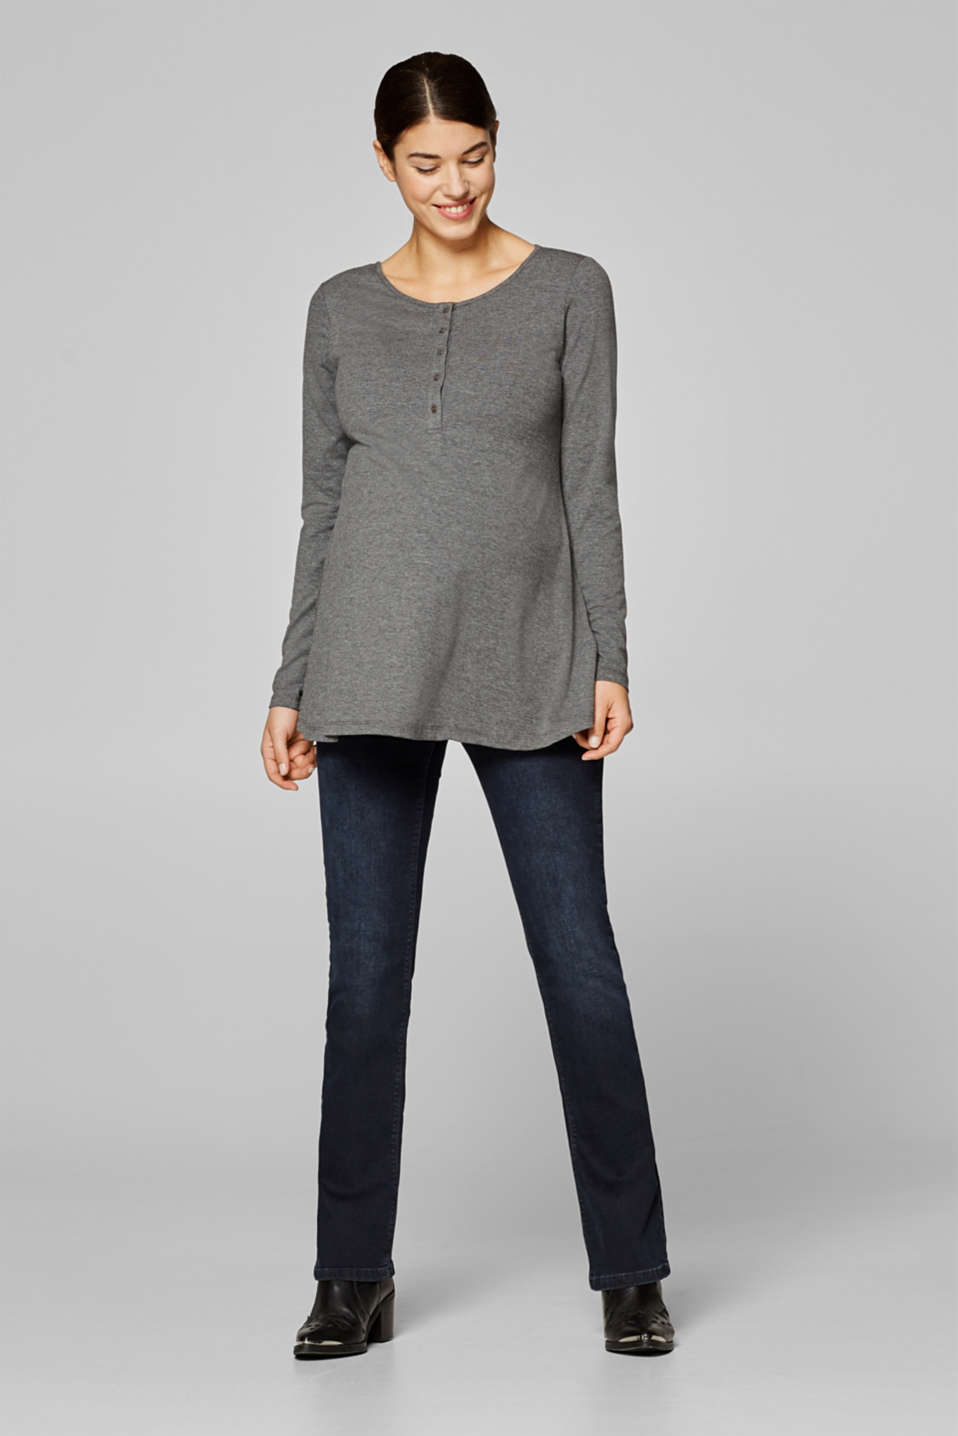 A-line nursing top